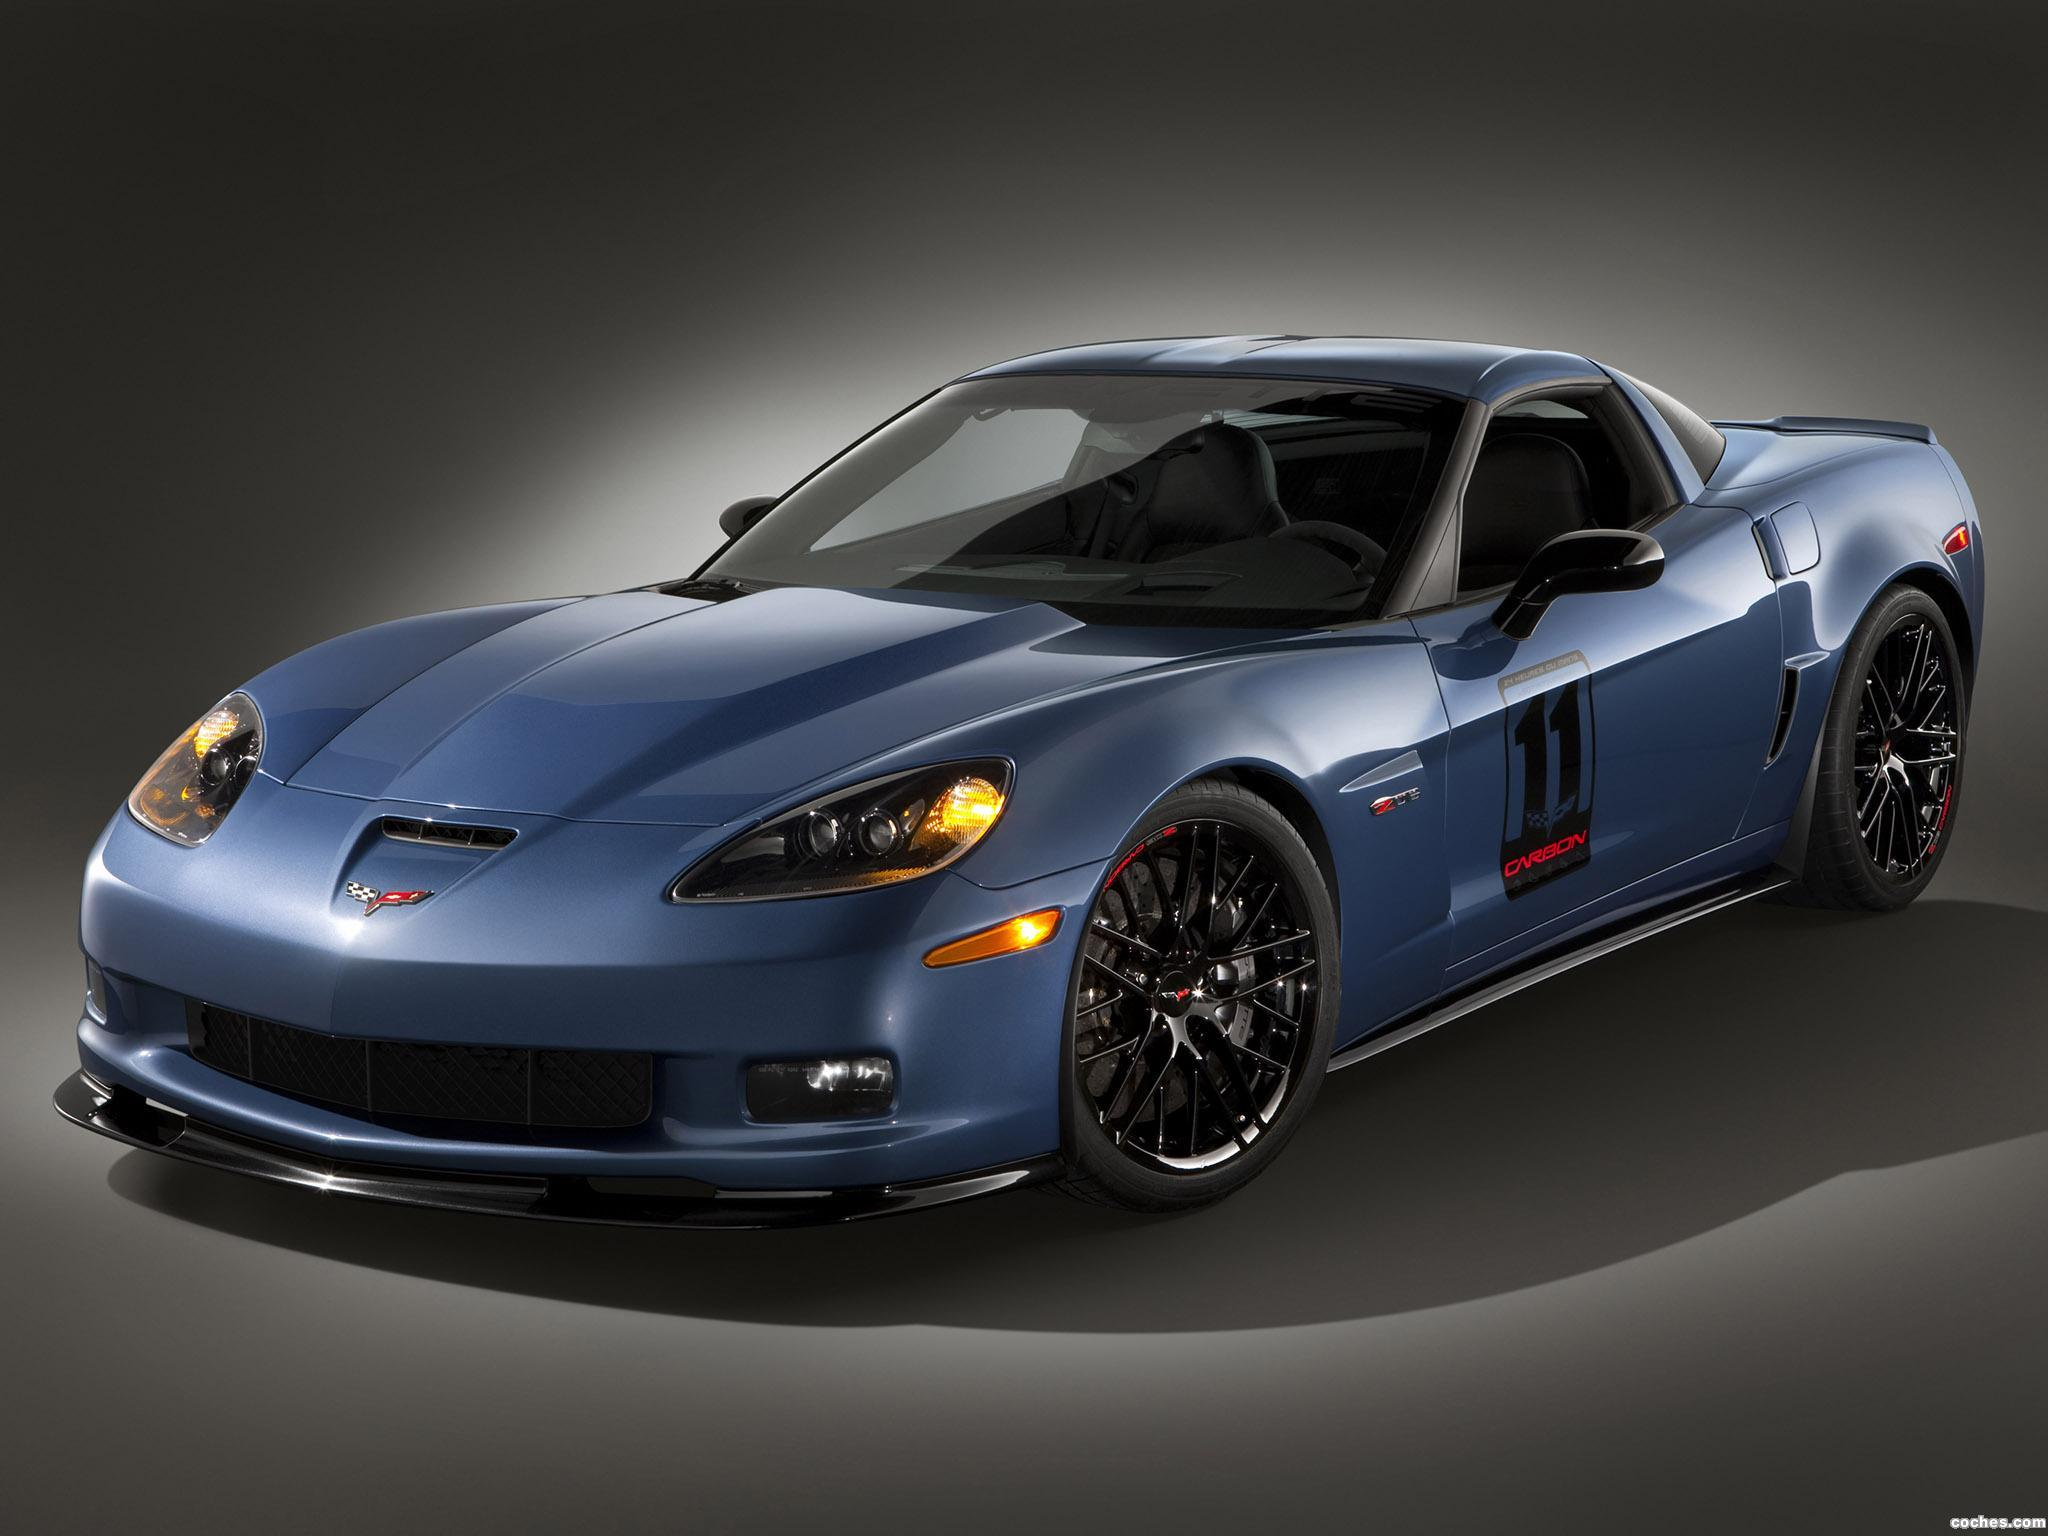 Foto 0 de Chevrolet Z06 Carbon Limited Edition 2010